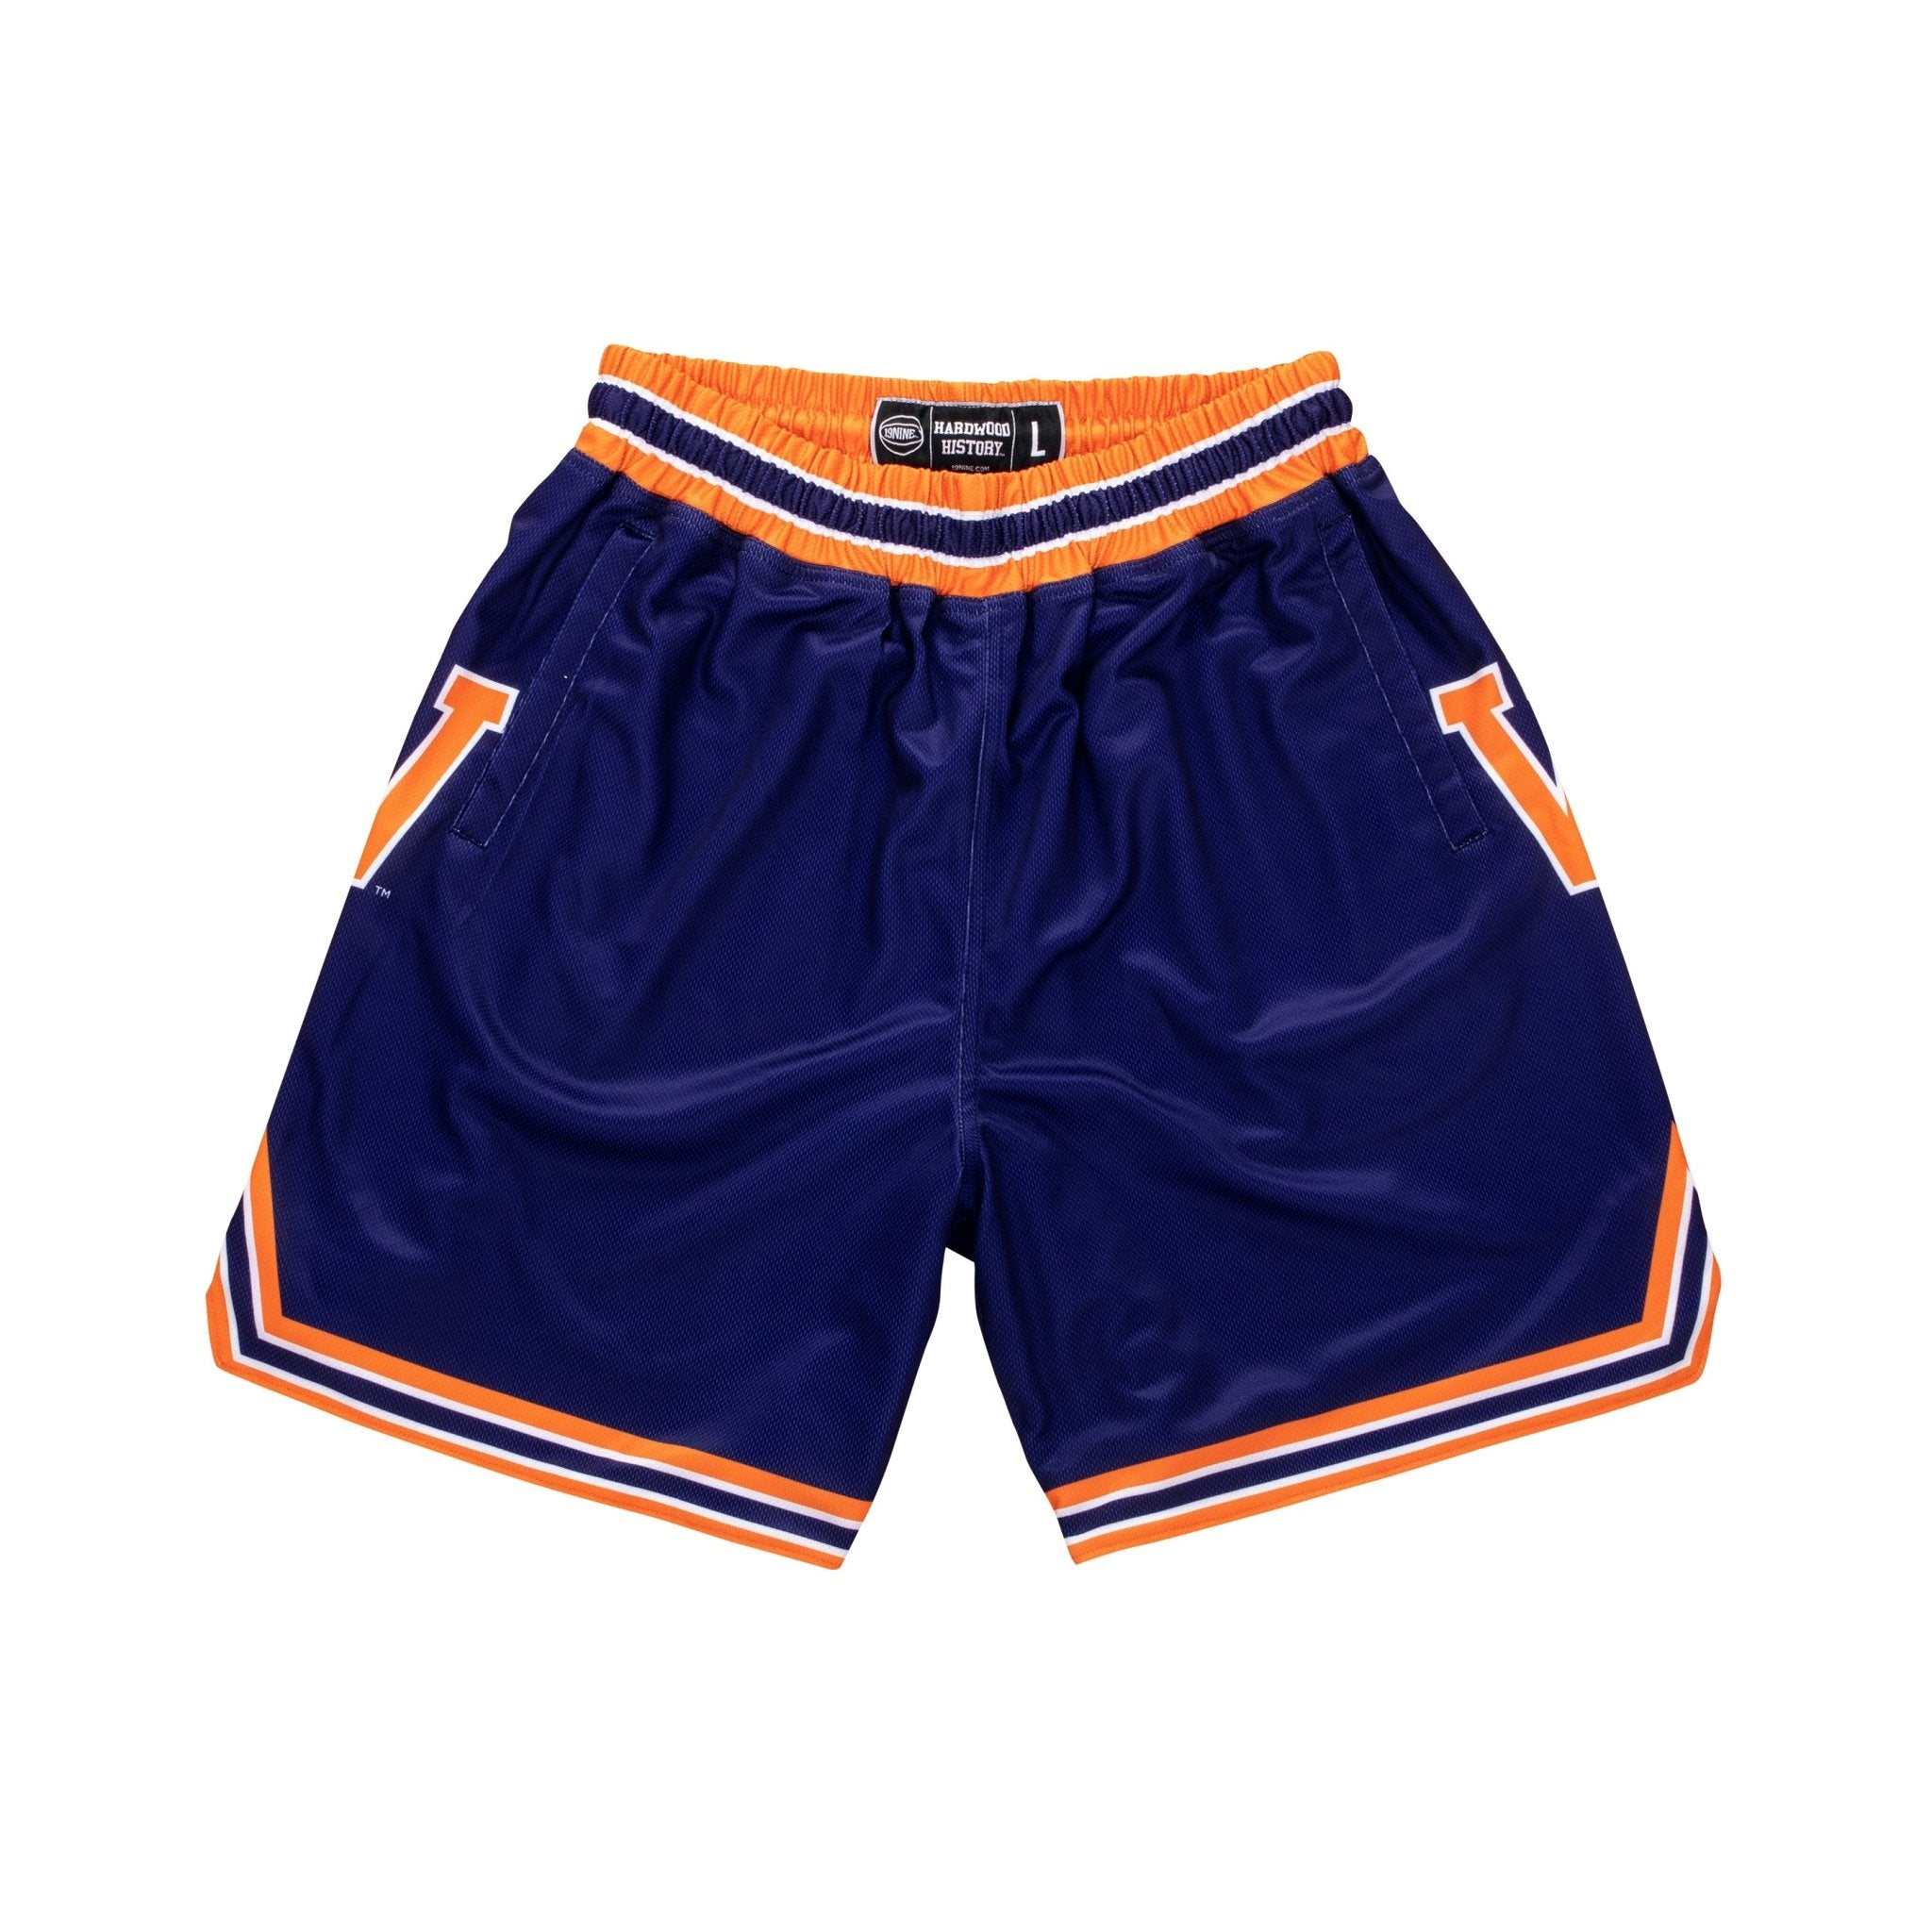 Virginia Cavaliers 1994-1995 Retro Shorts - SLAM